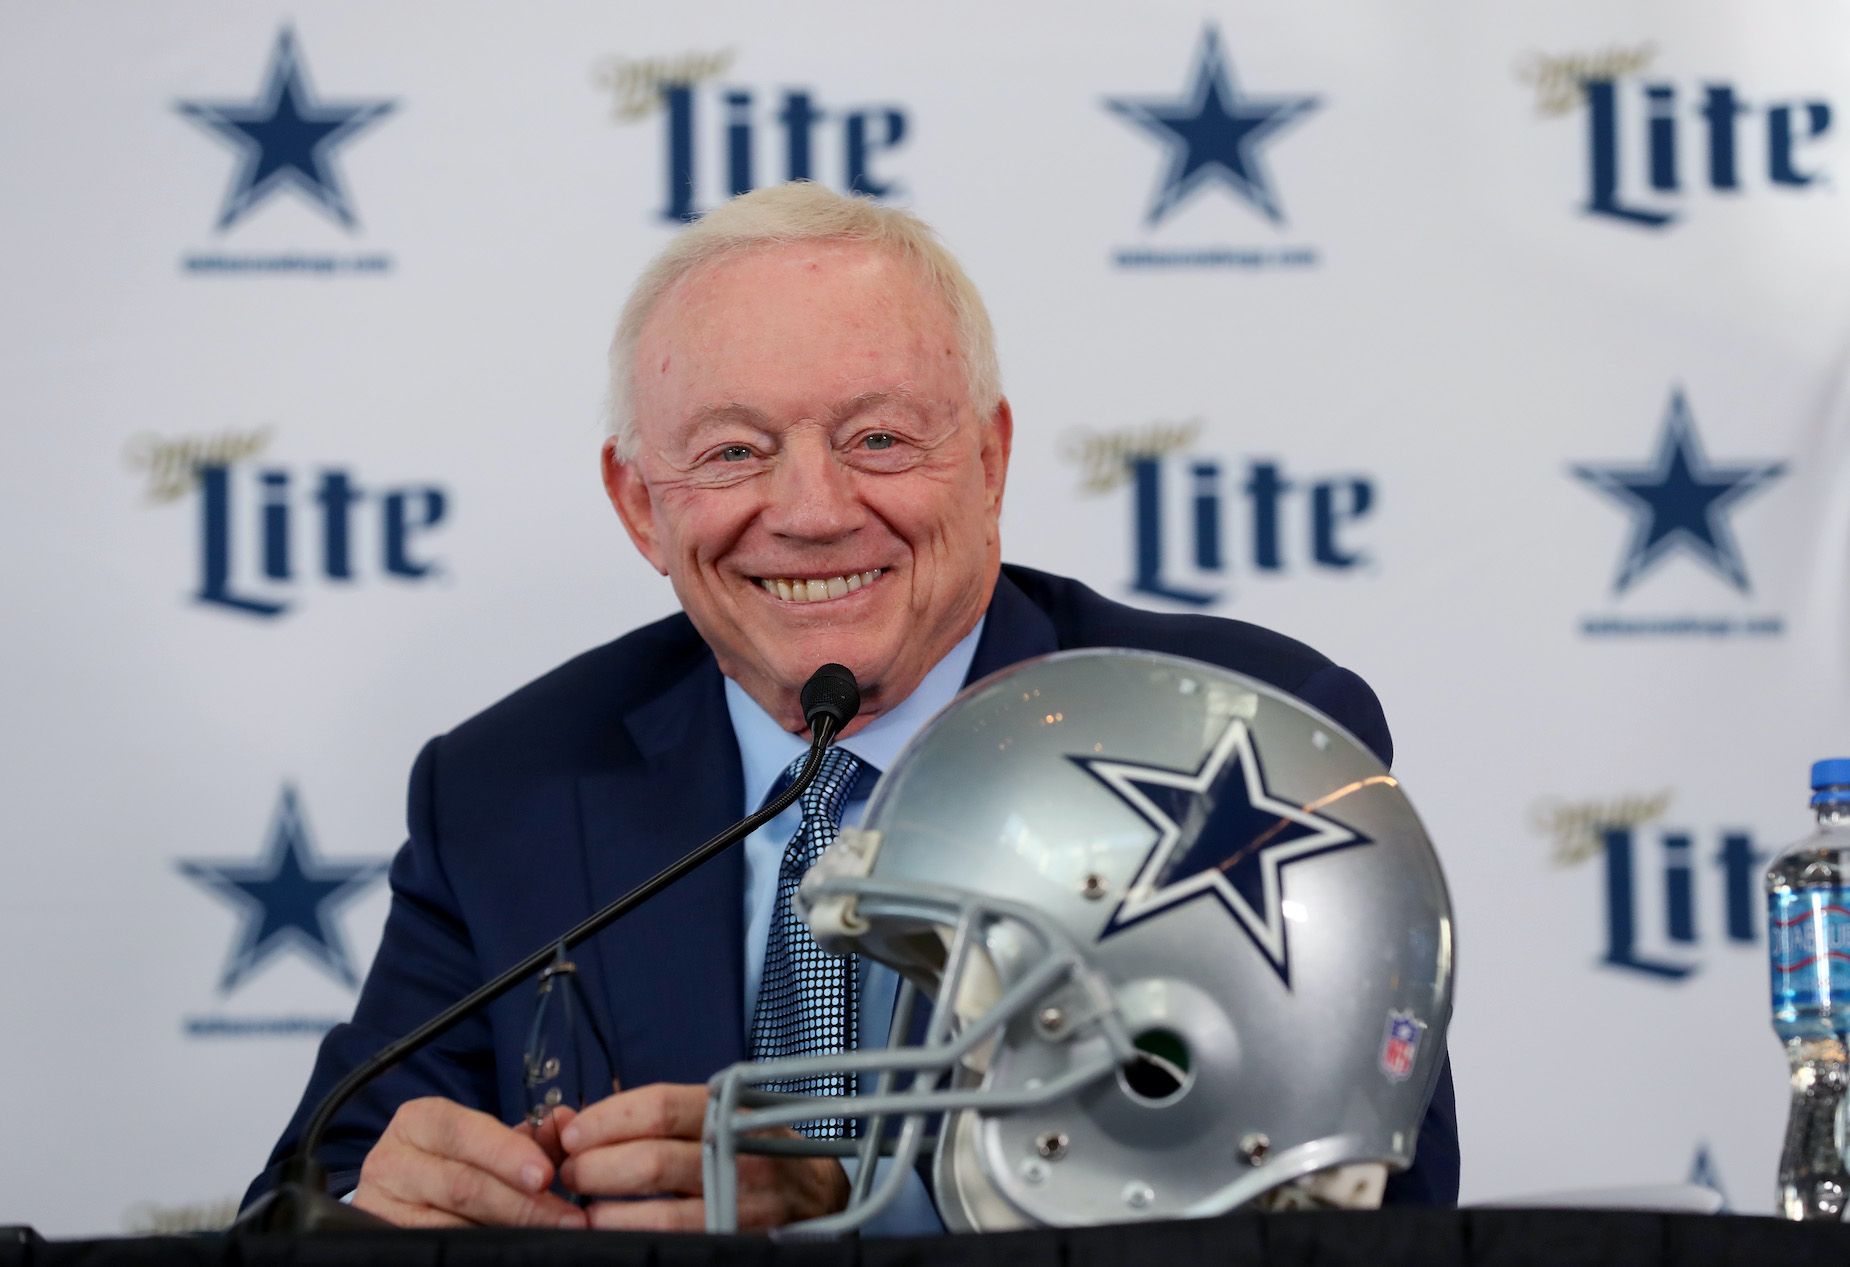 Dallas Cowboys owner Jerry Jones during a 2020 press conference.